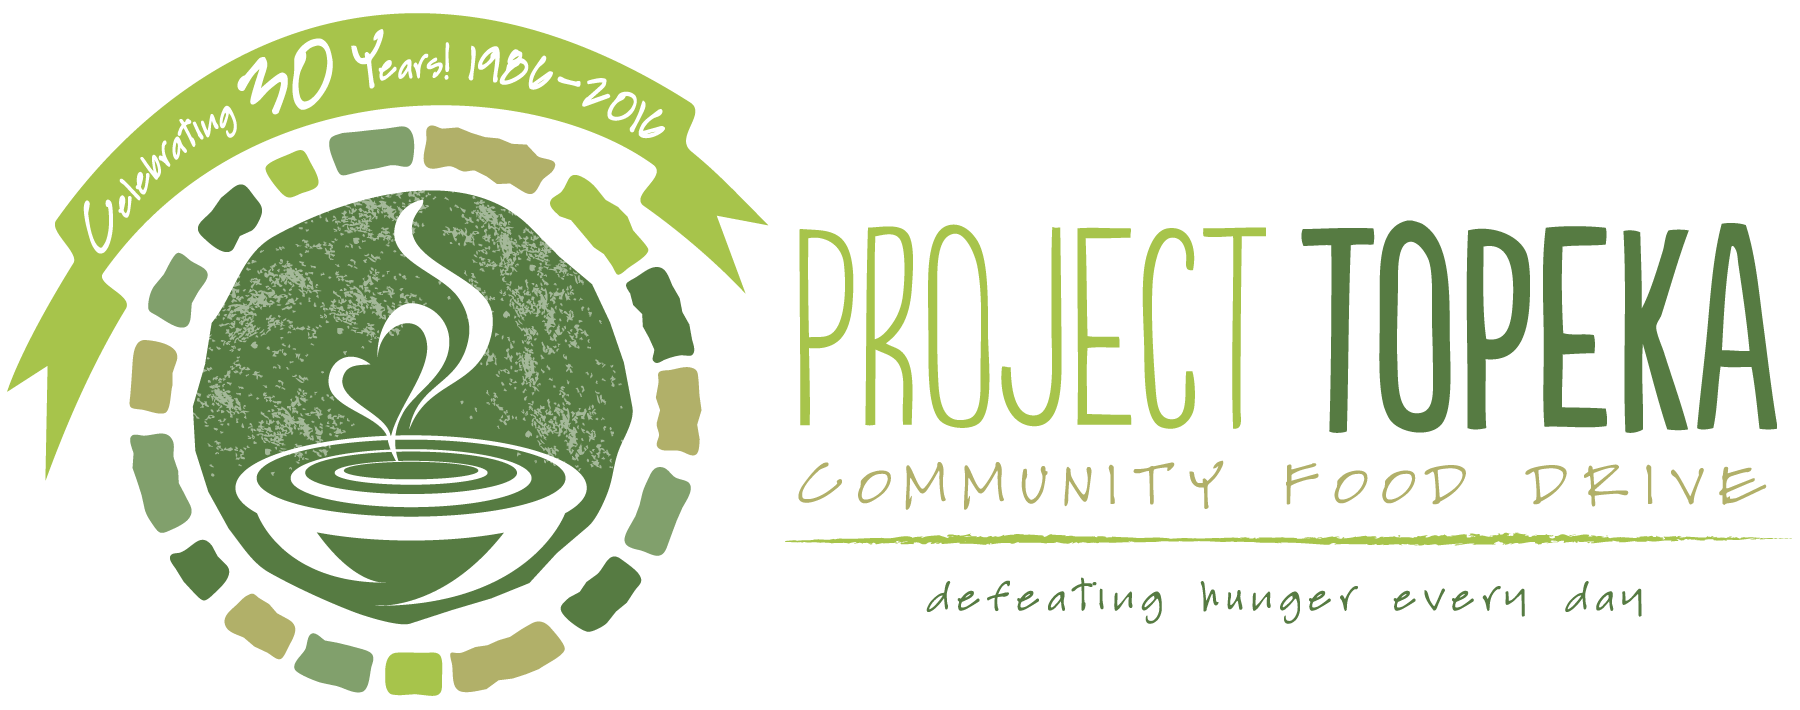 Project Topeka Logo 30th